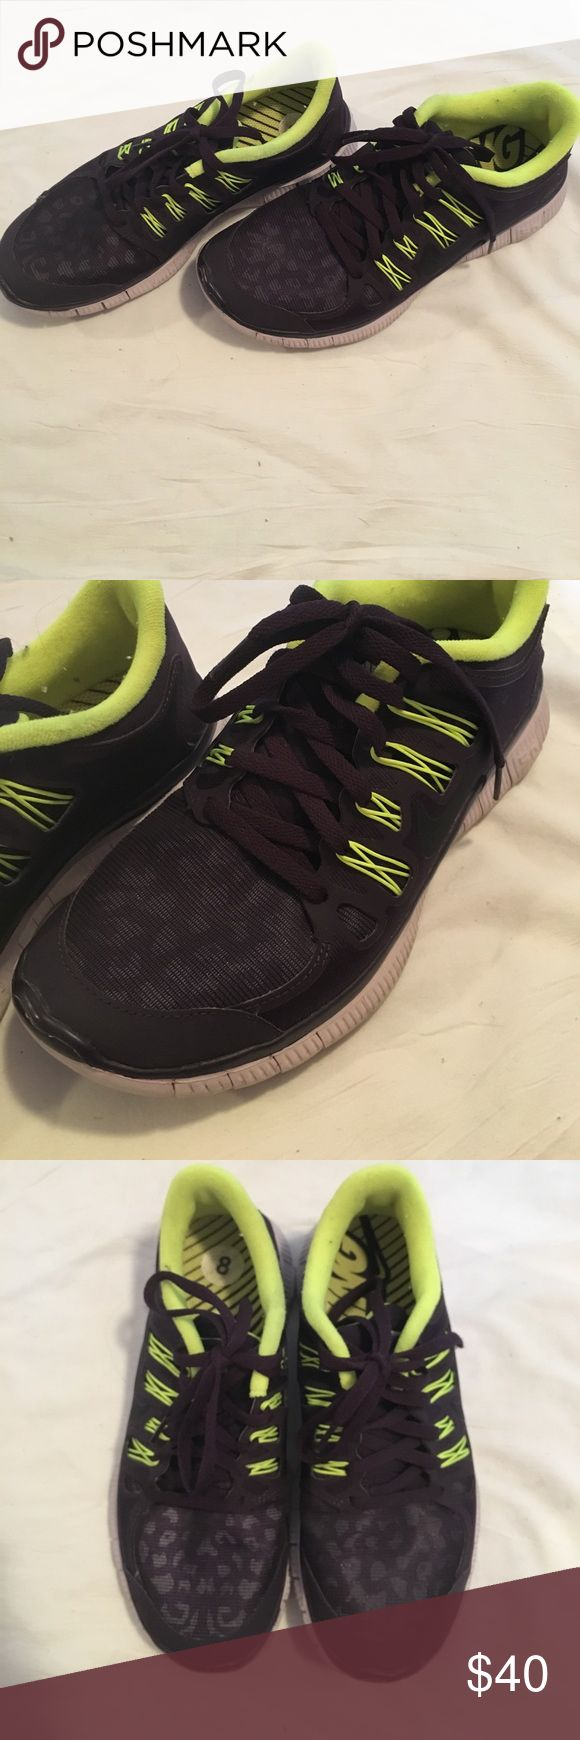 Nike Free 5.0 Nike Free 5.0 shoes. Dark purple with cute cheetah print on toes, neon yellow/green accents. Hardly worn. Size 8. Nike Shoes Sneakers